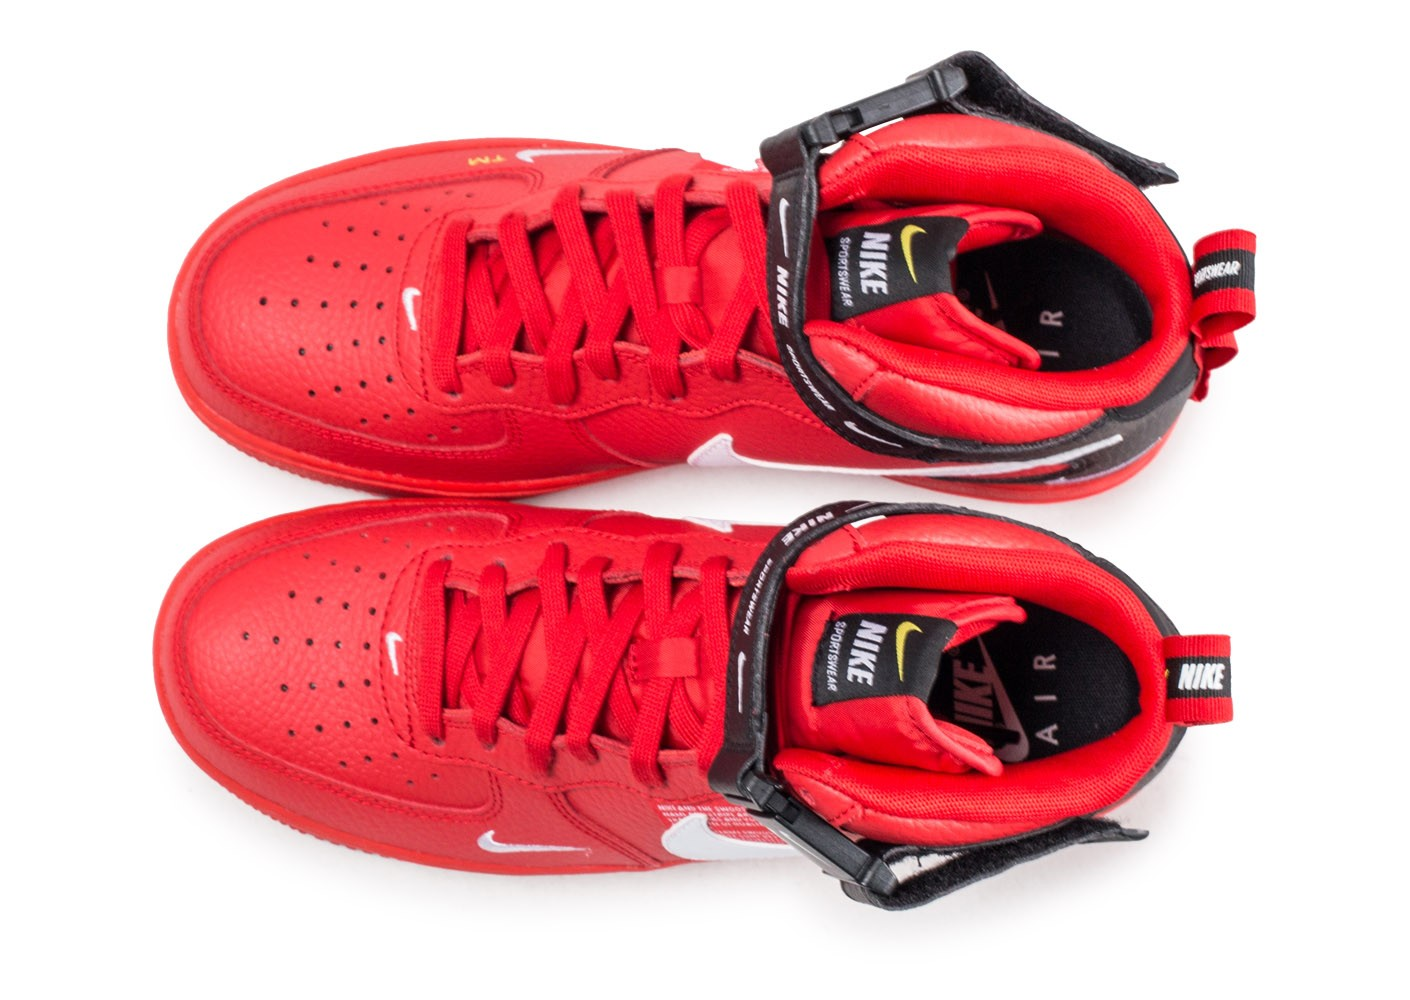 separation shoes 4996d 3617b ... Chaussures Nike Nike Air Force 1 07 Mid LV8 Utility rouge vue arrière  ...